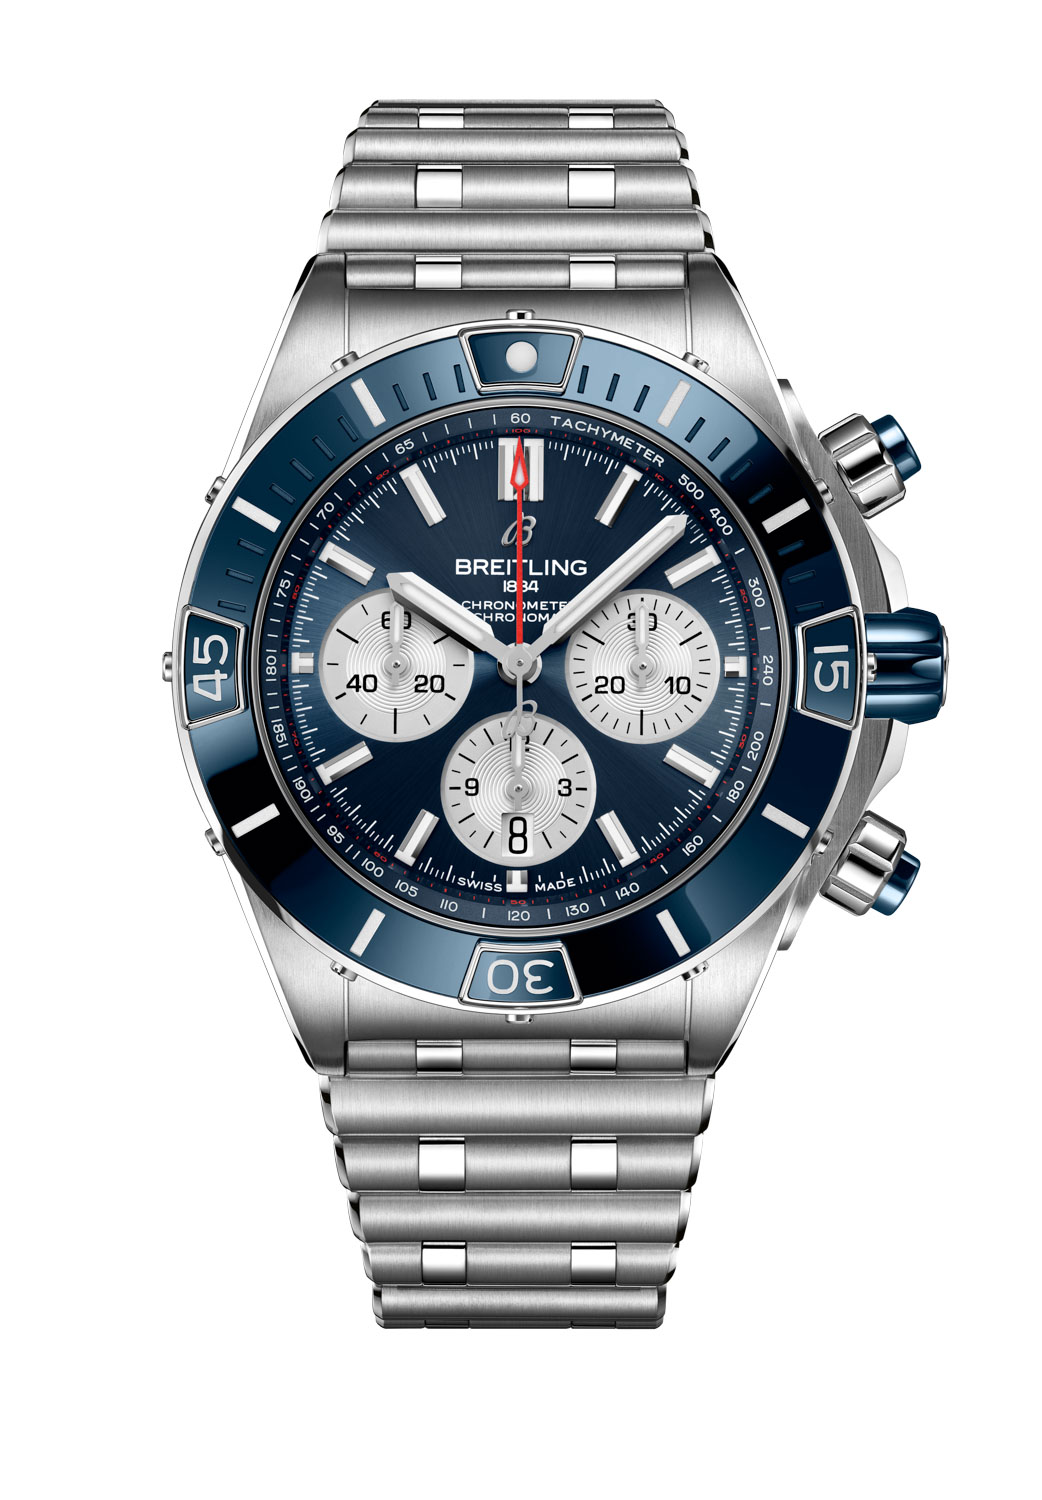 The Super Chronomat B01 44 in stainless steel with a blue dial fitted on a Rouleaux bracelet without the UTC module